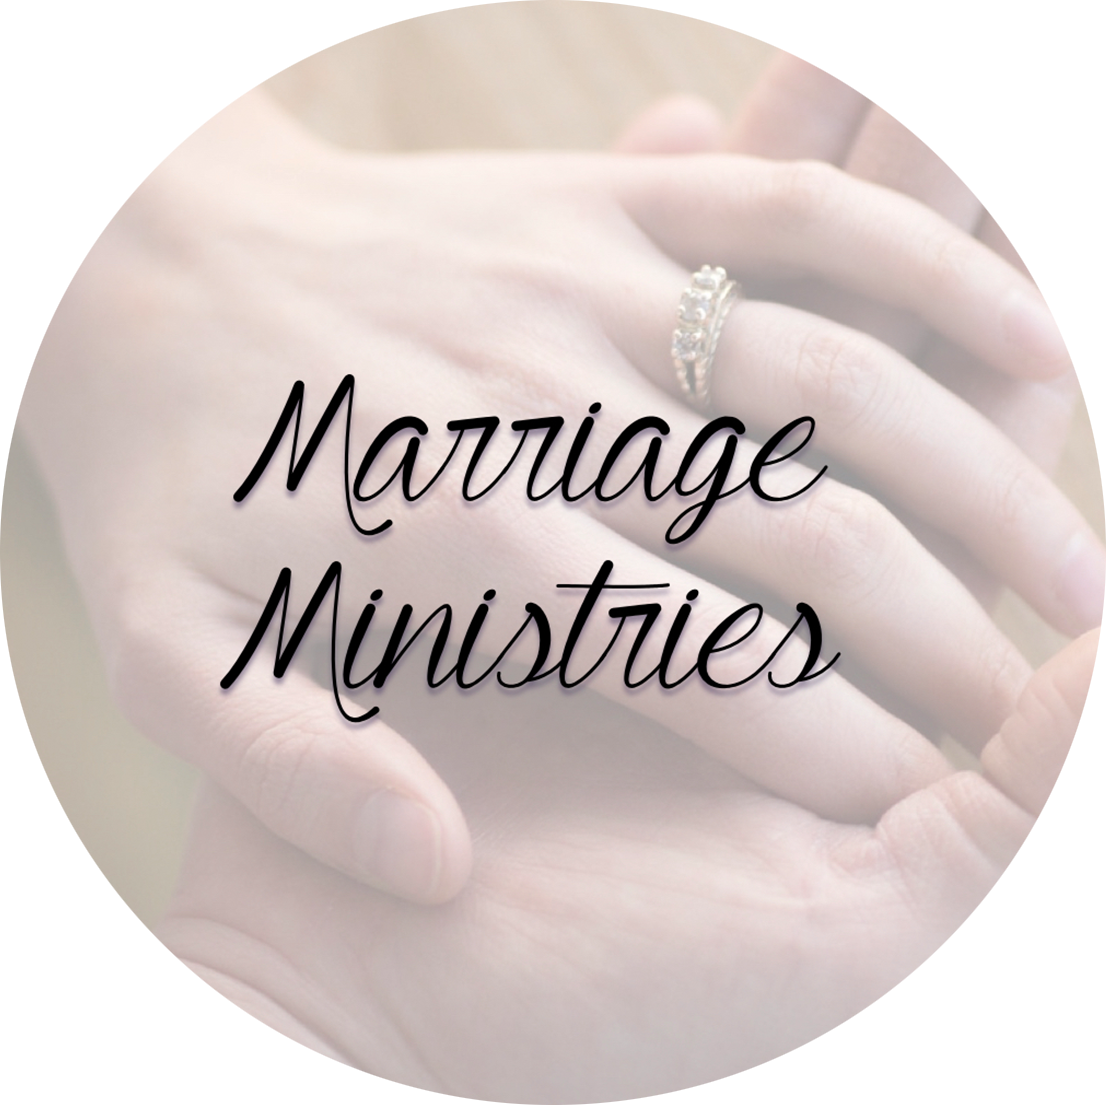 Marriage Ministries.png